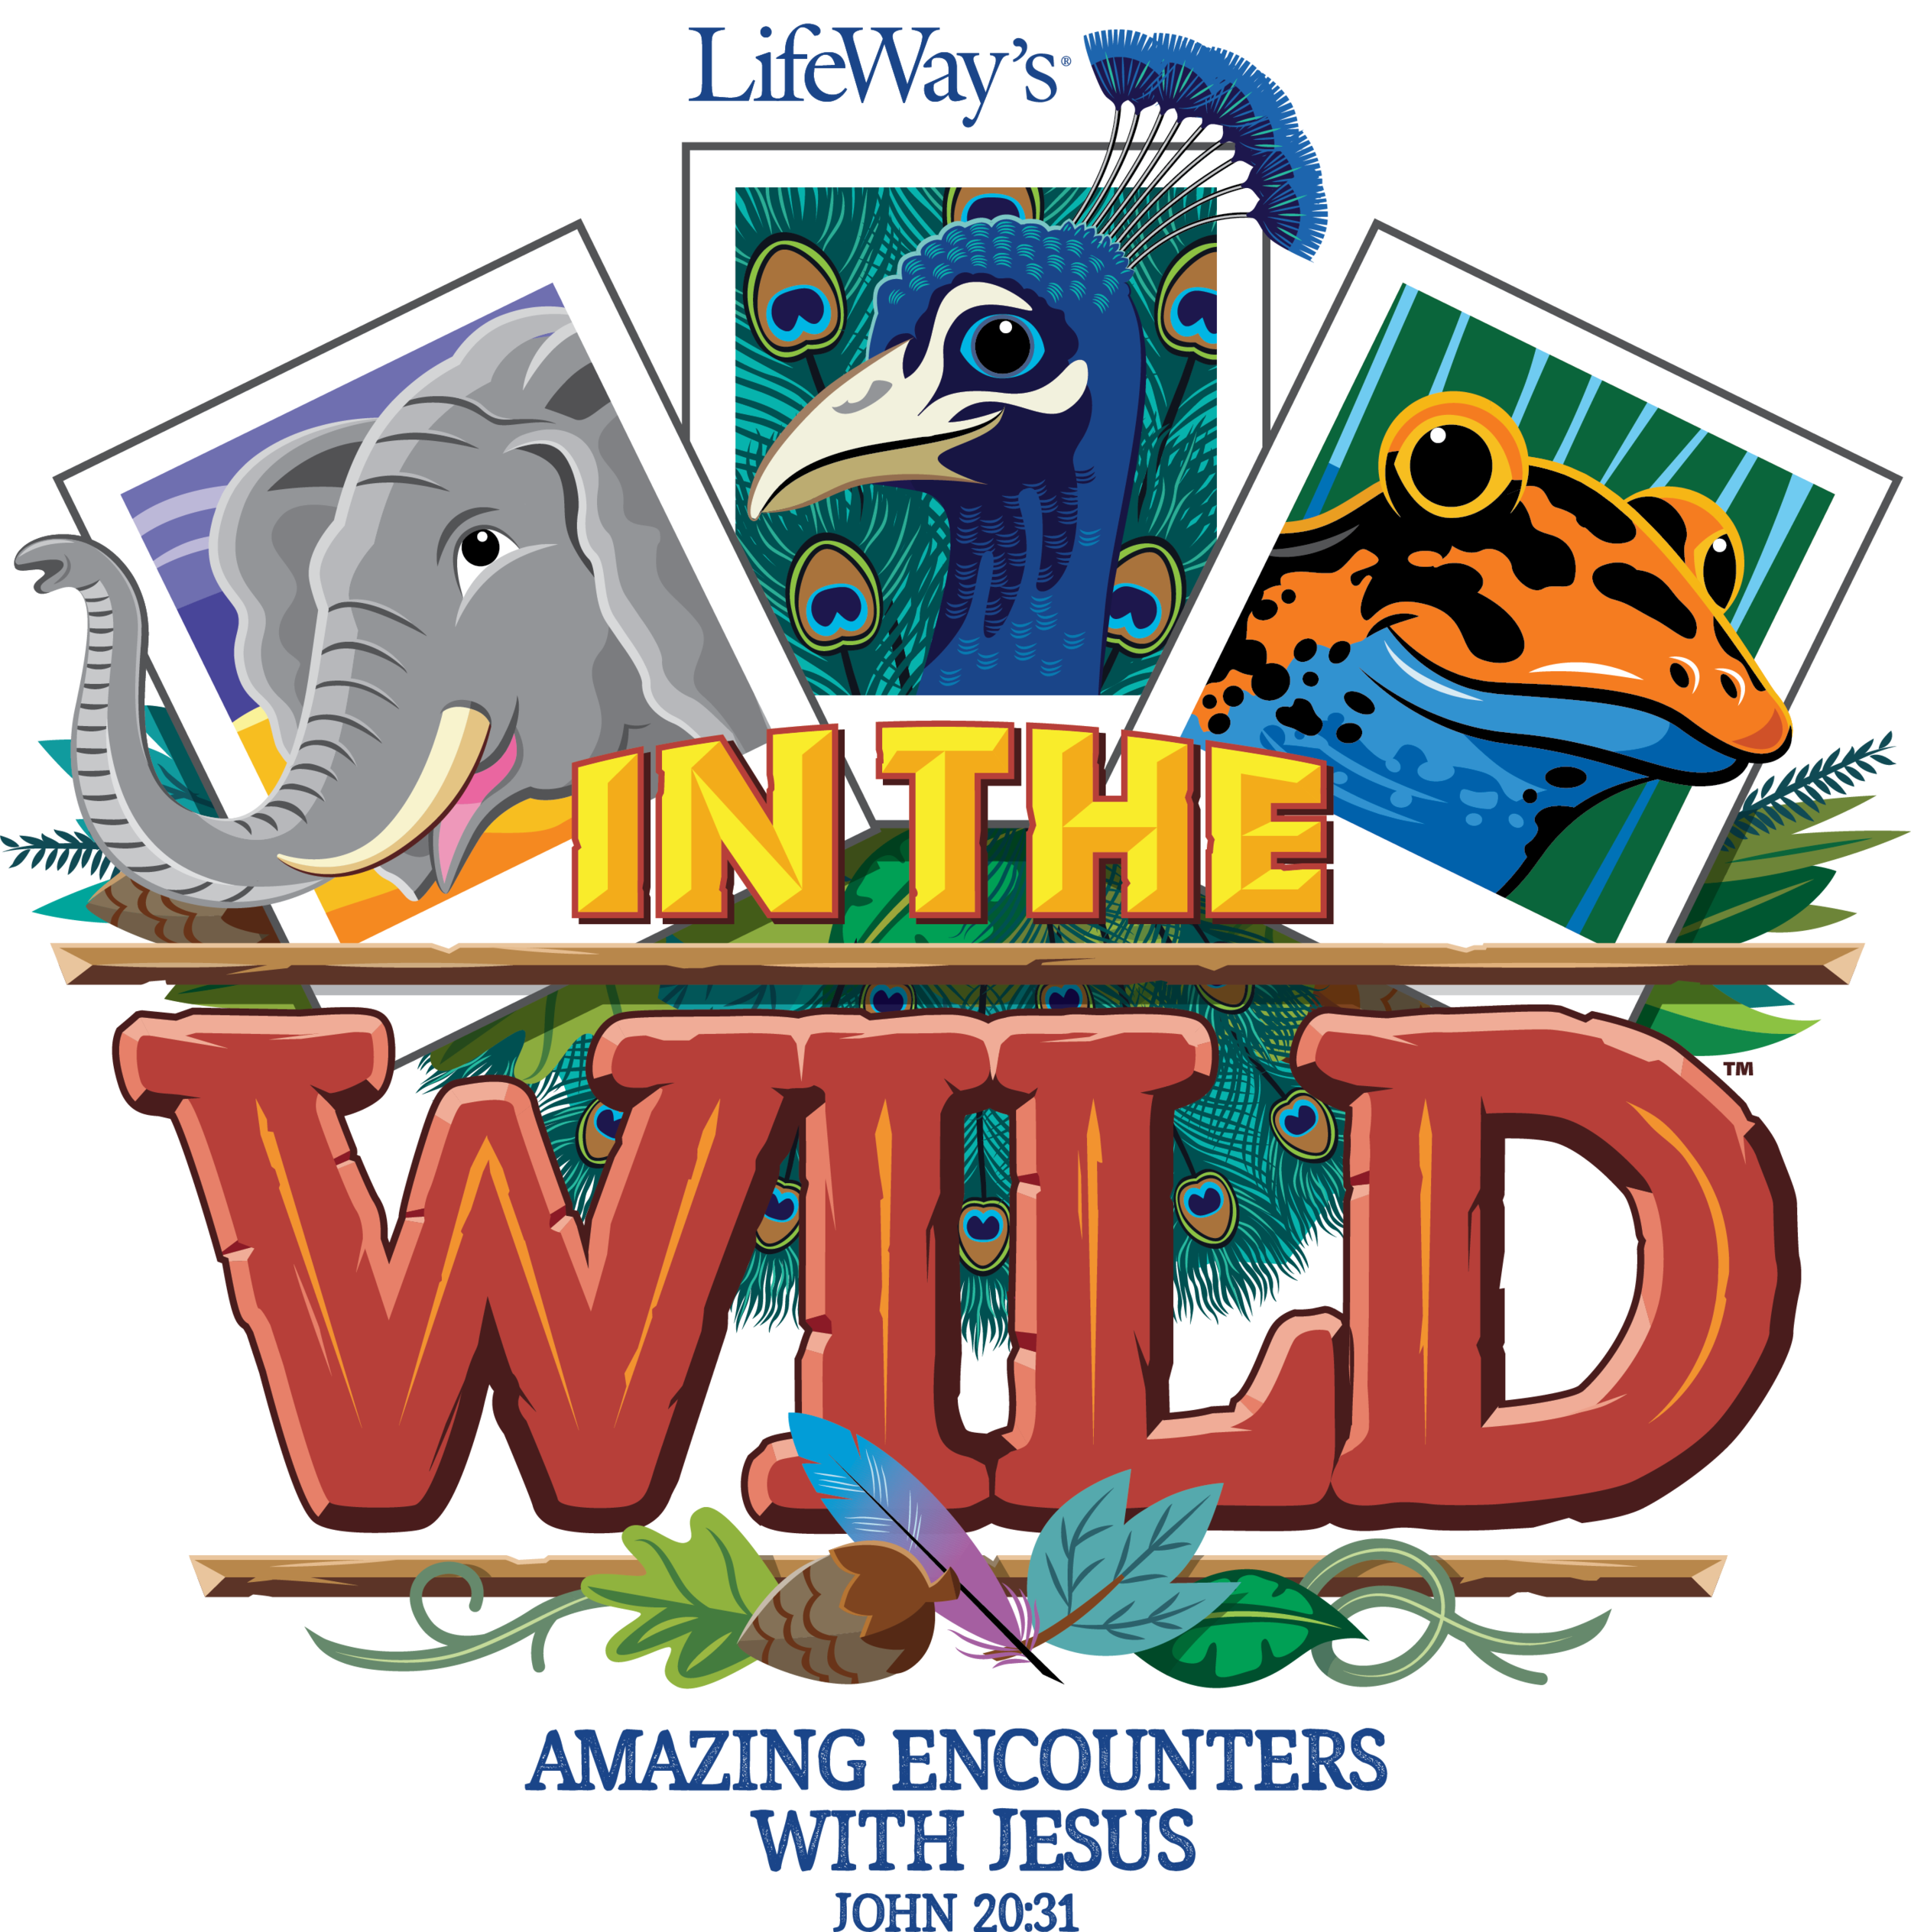 VBS 2019 - We are getting WILD!!June 24-27thAges 3 year olds through completed 5th Grade.Cost: Free